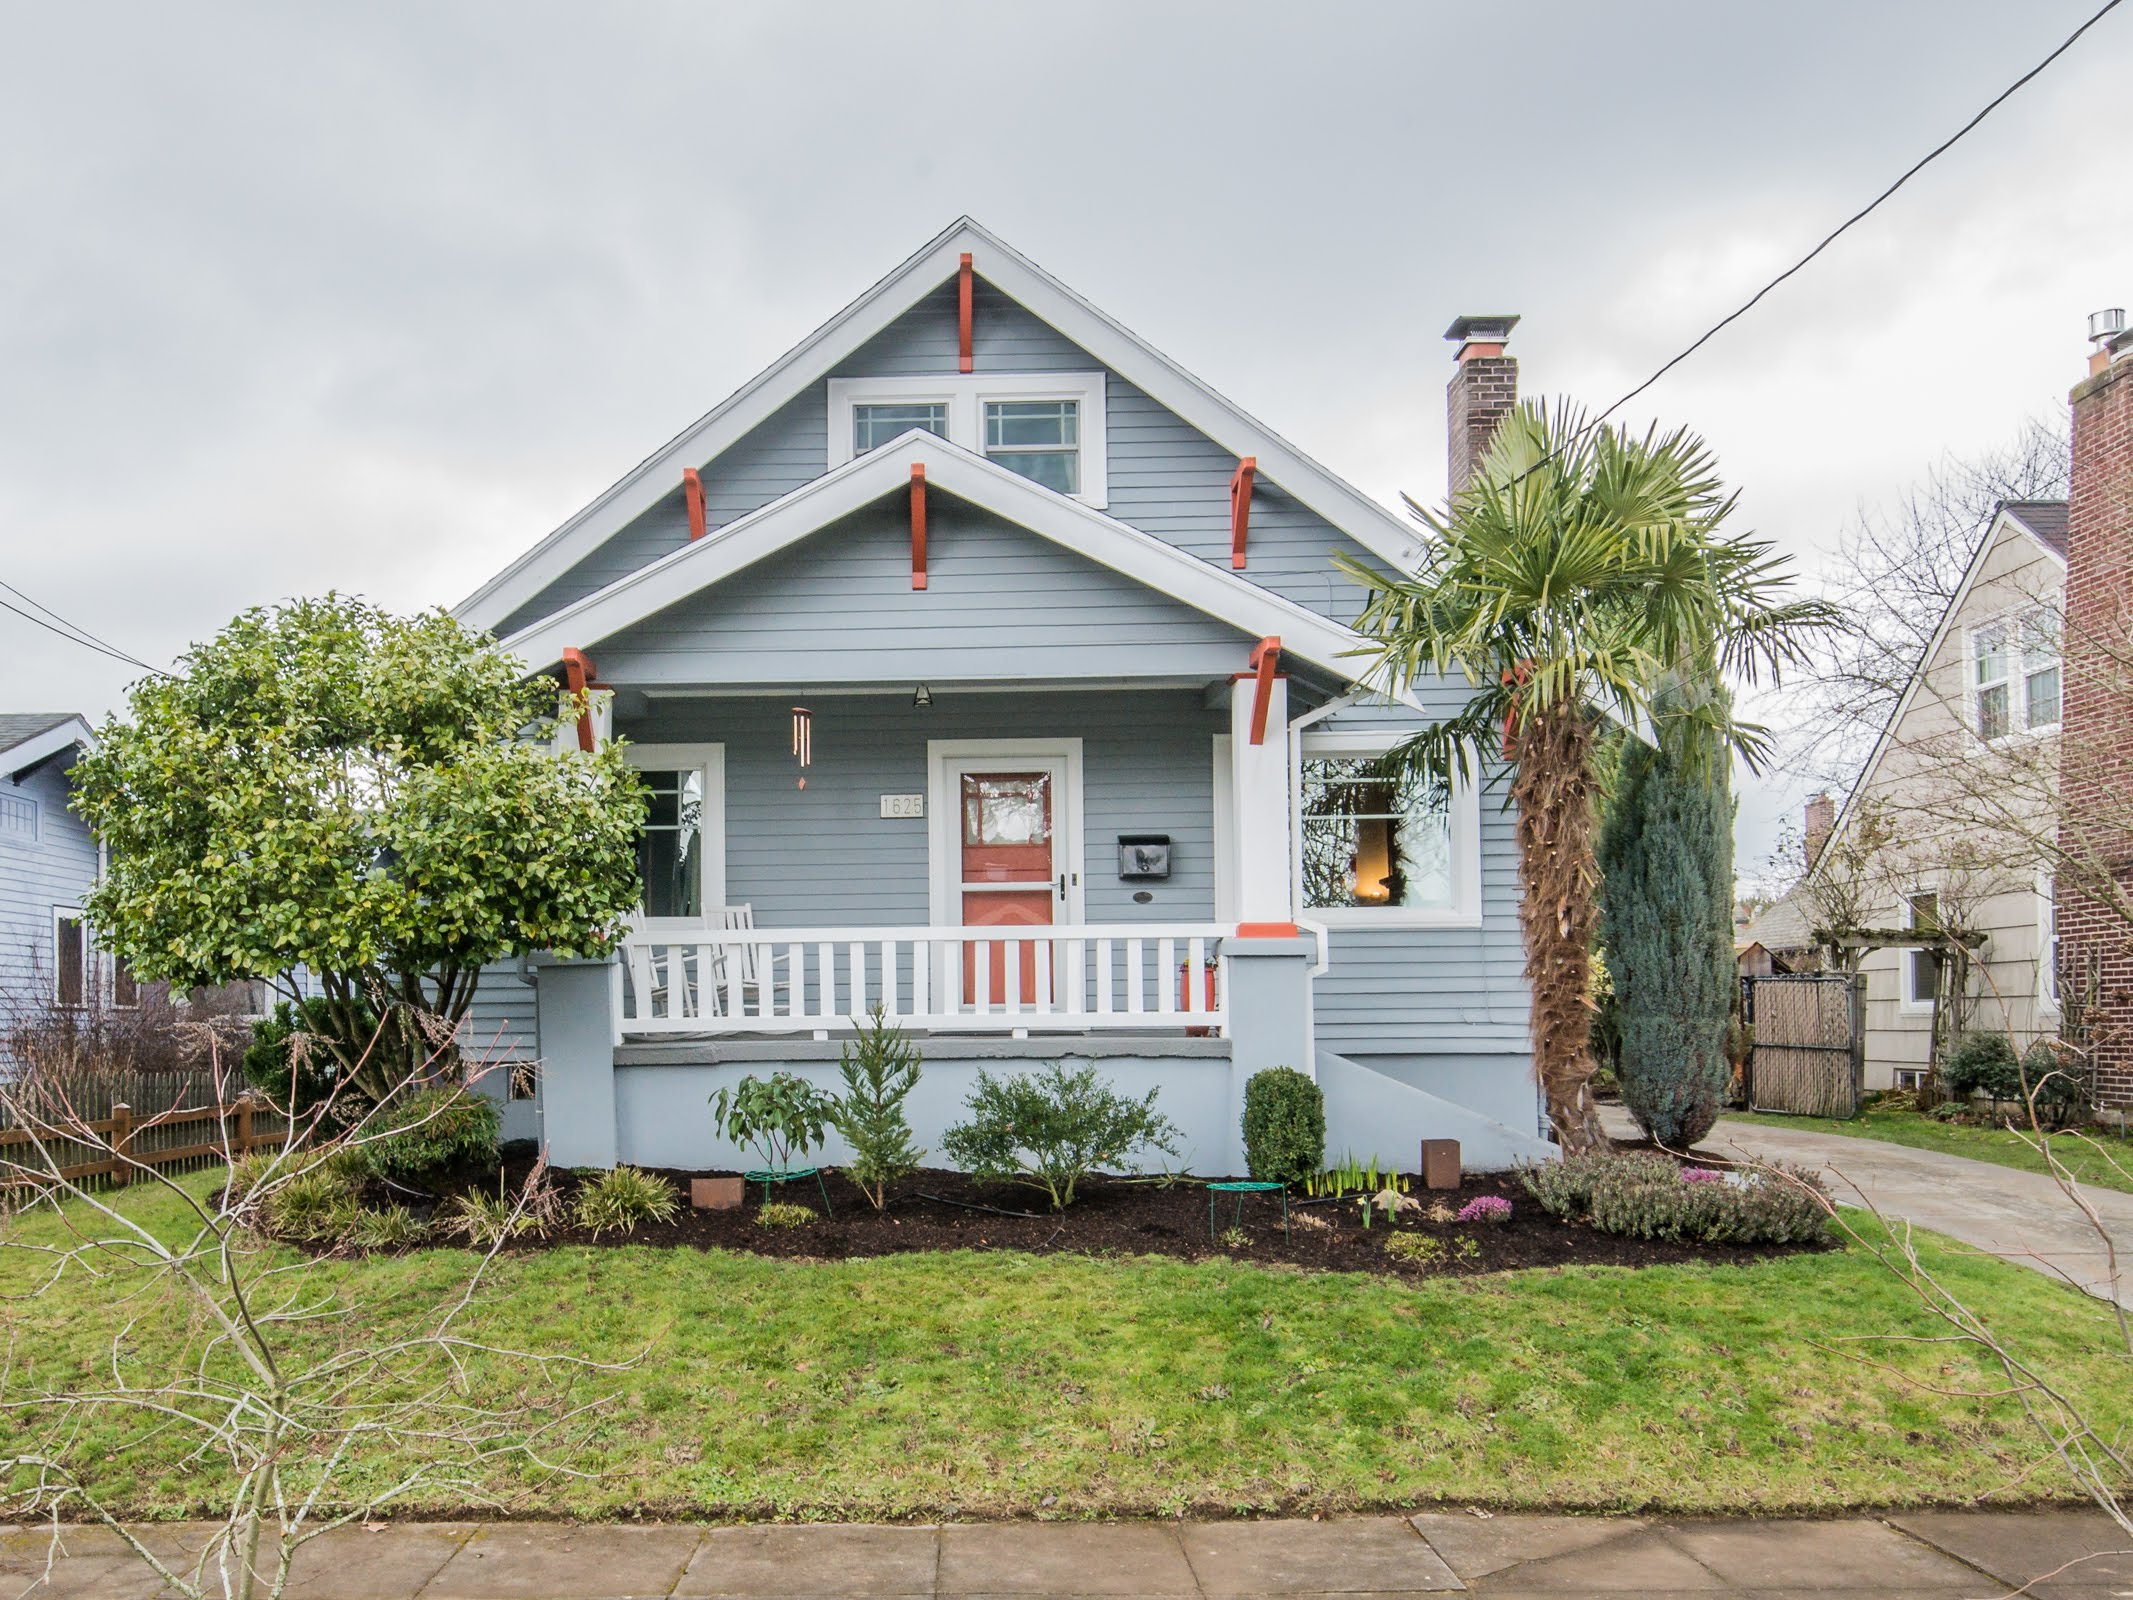 """""""We've bought and sold houses before, but we've never worked with someone we felt so comfortable with that we actually had fun during something that is generally a stressful experience. We would highly recommend Erin to anyone buying and/or selling a house anywhere in Portland."""" - L.J. + Nan"""